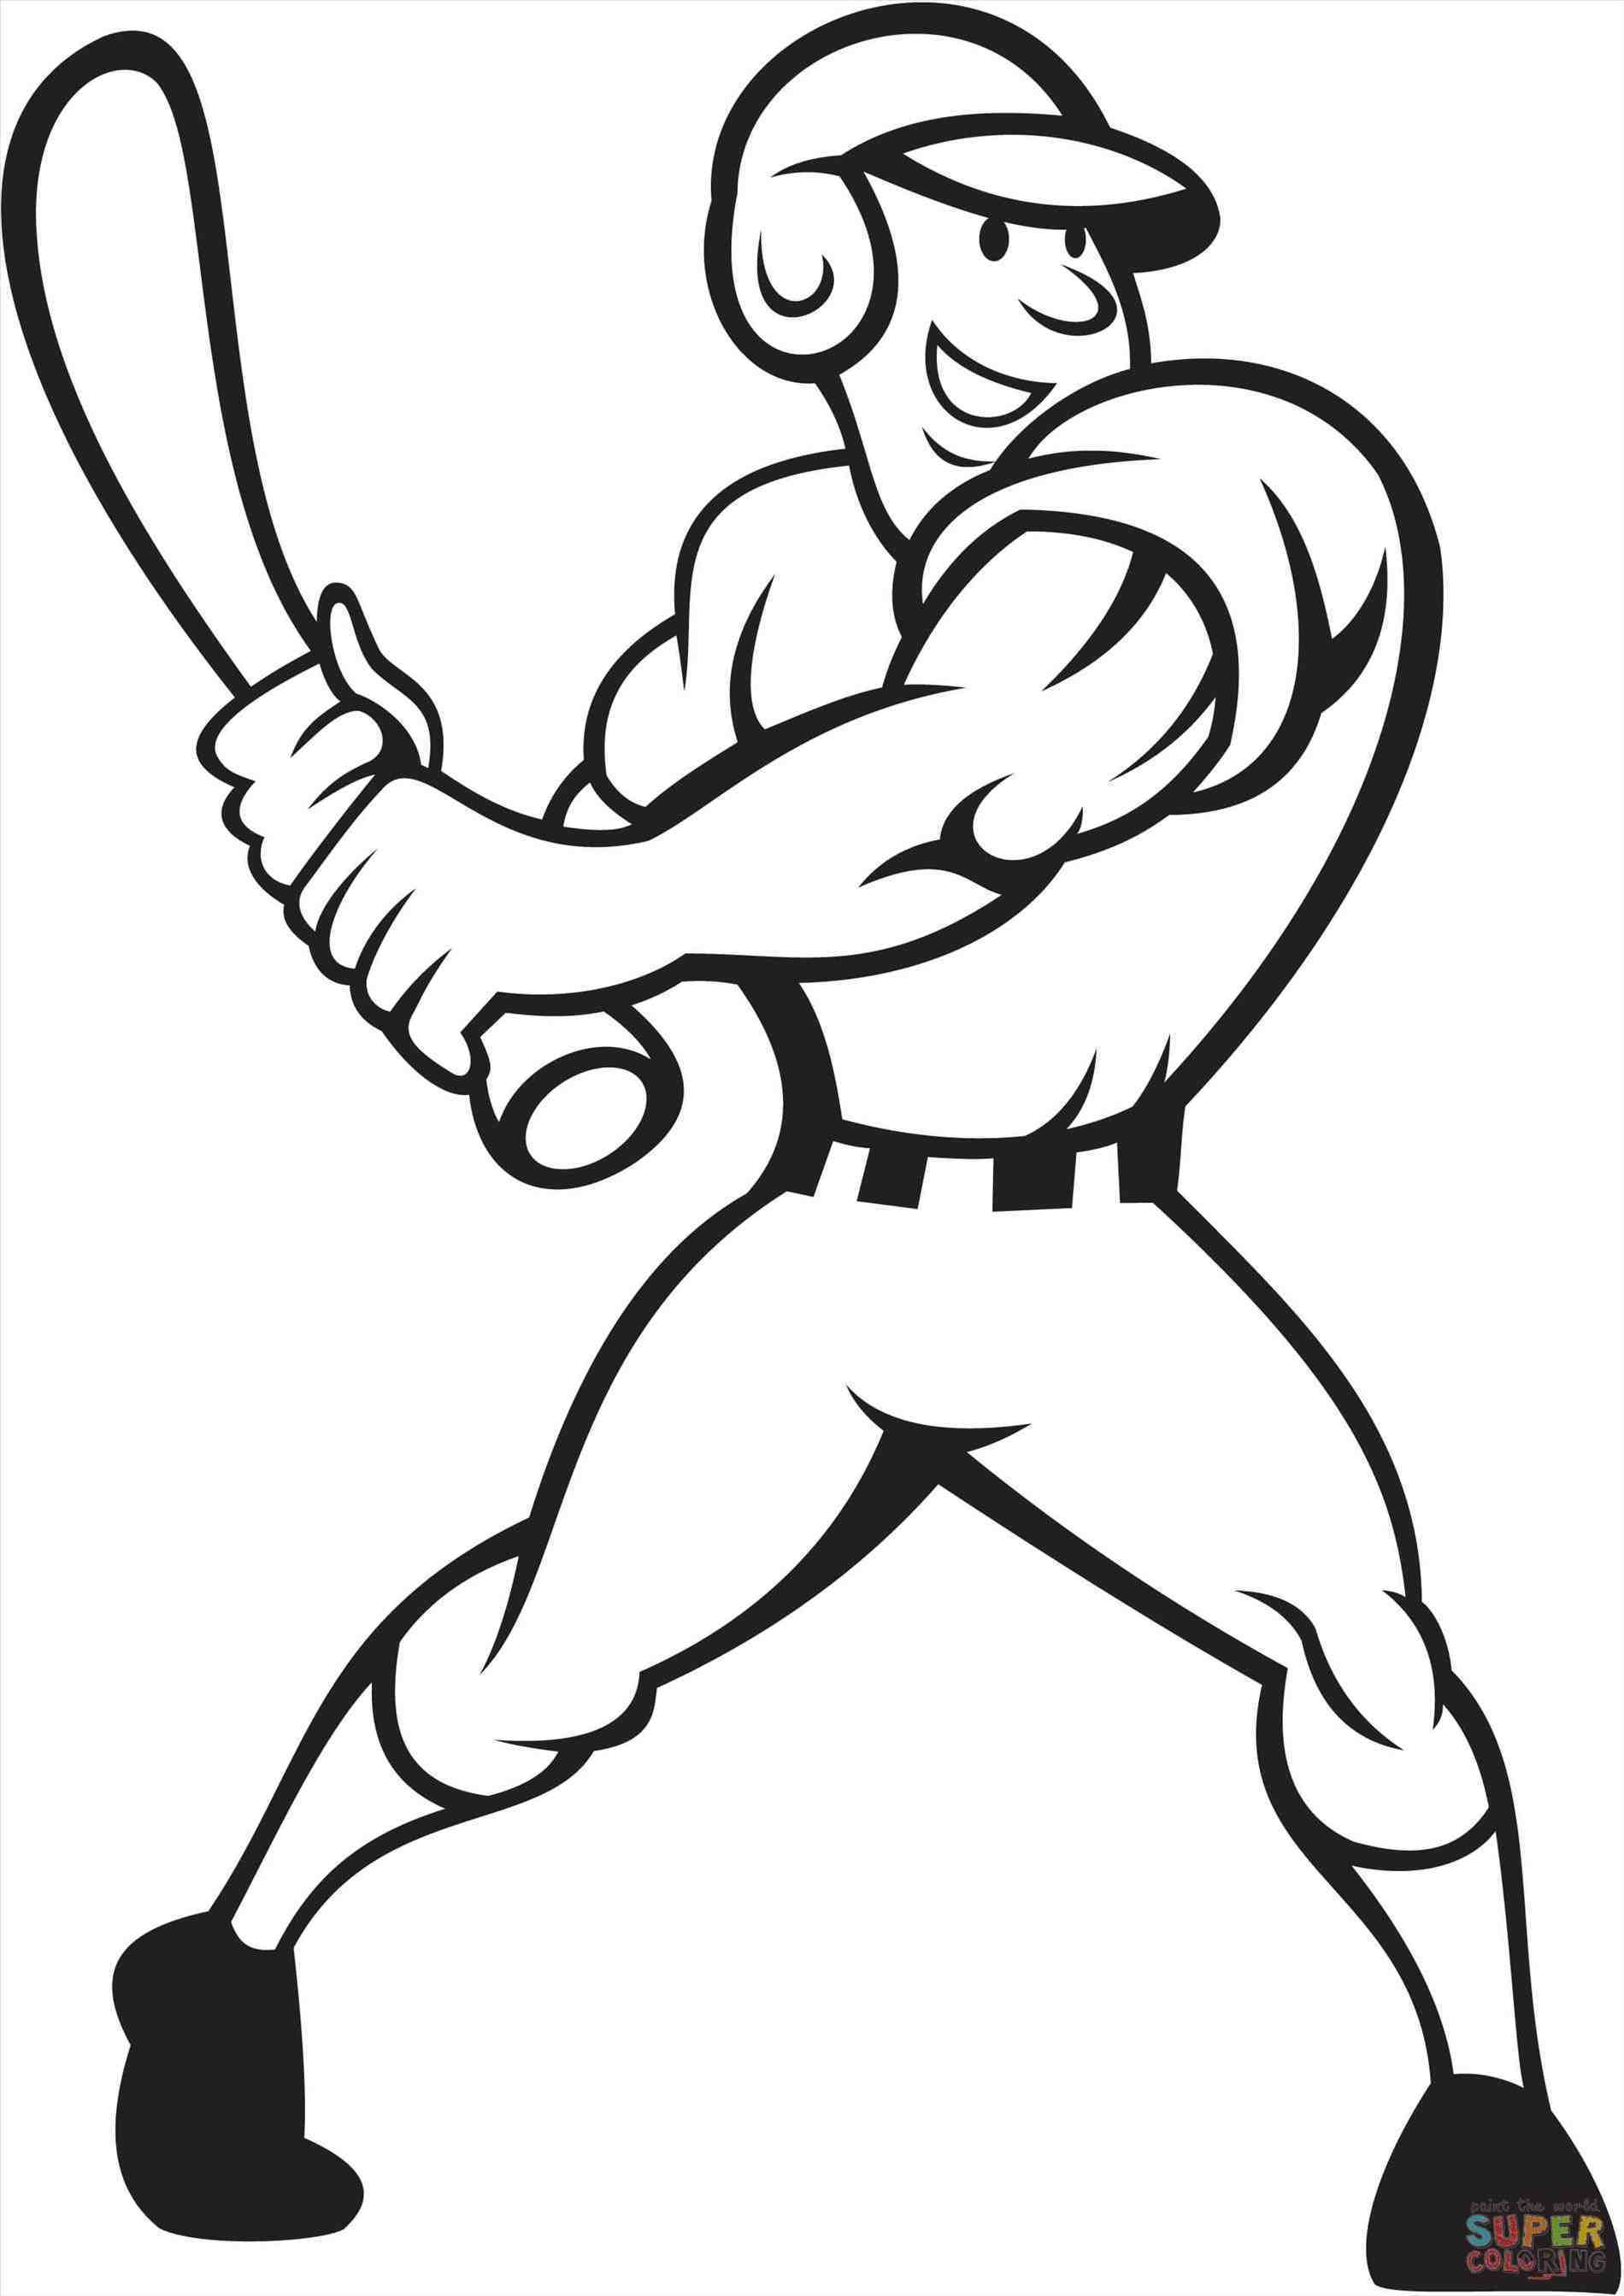 Baseball clipart icon. Player icons png free